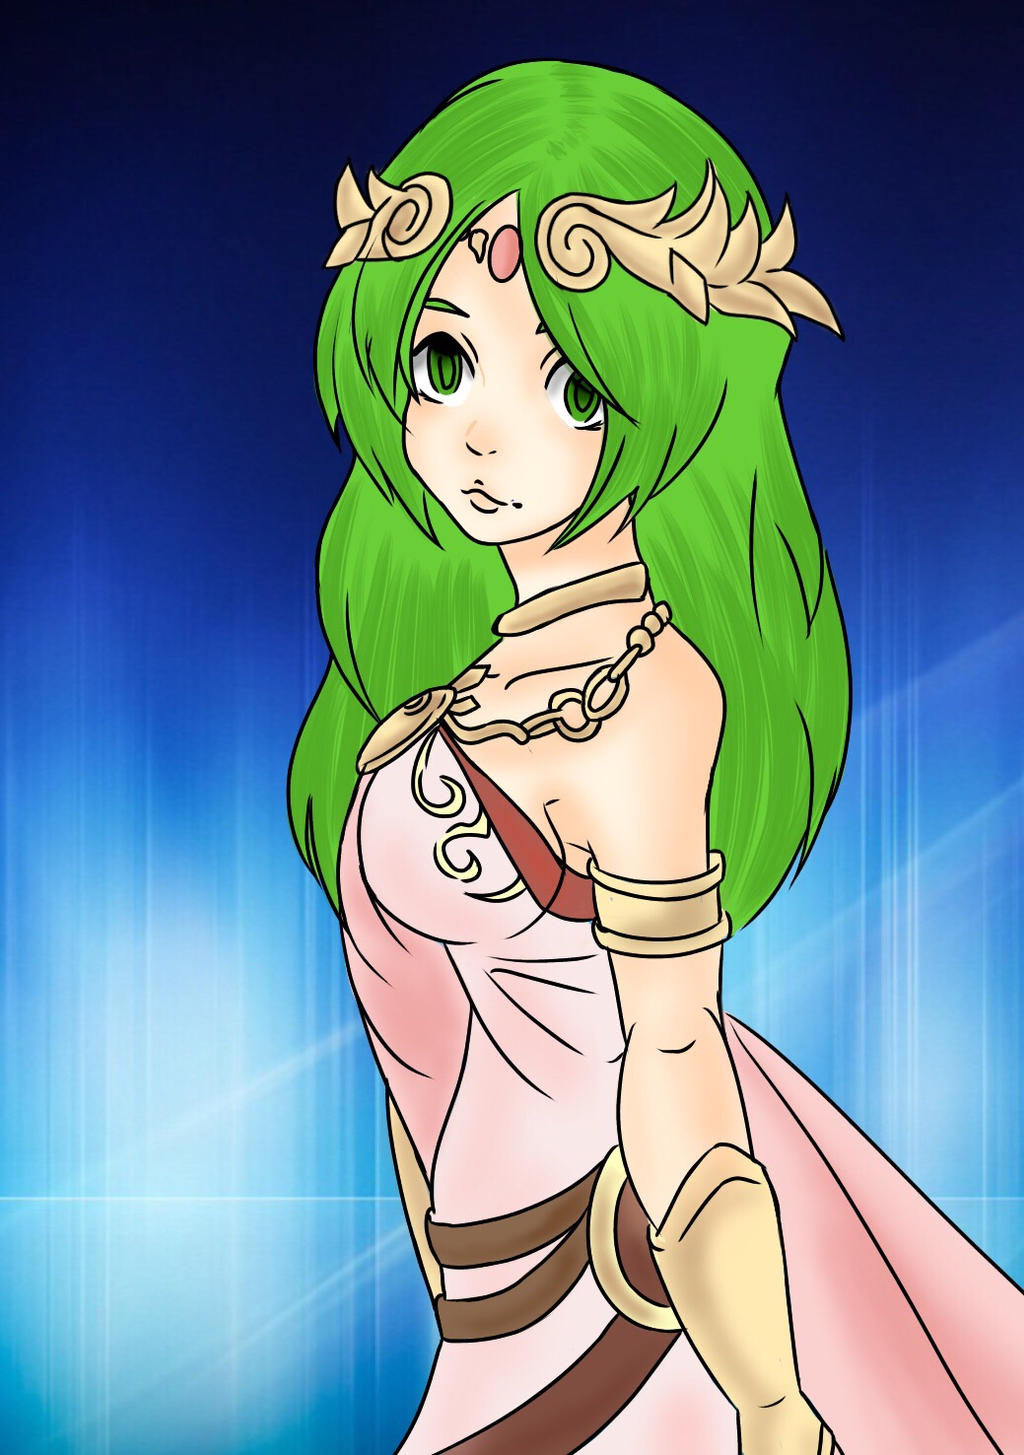 Lady Palutena Commission for Who256 by KaiNoKimi